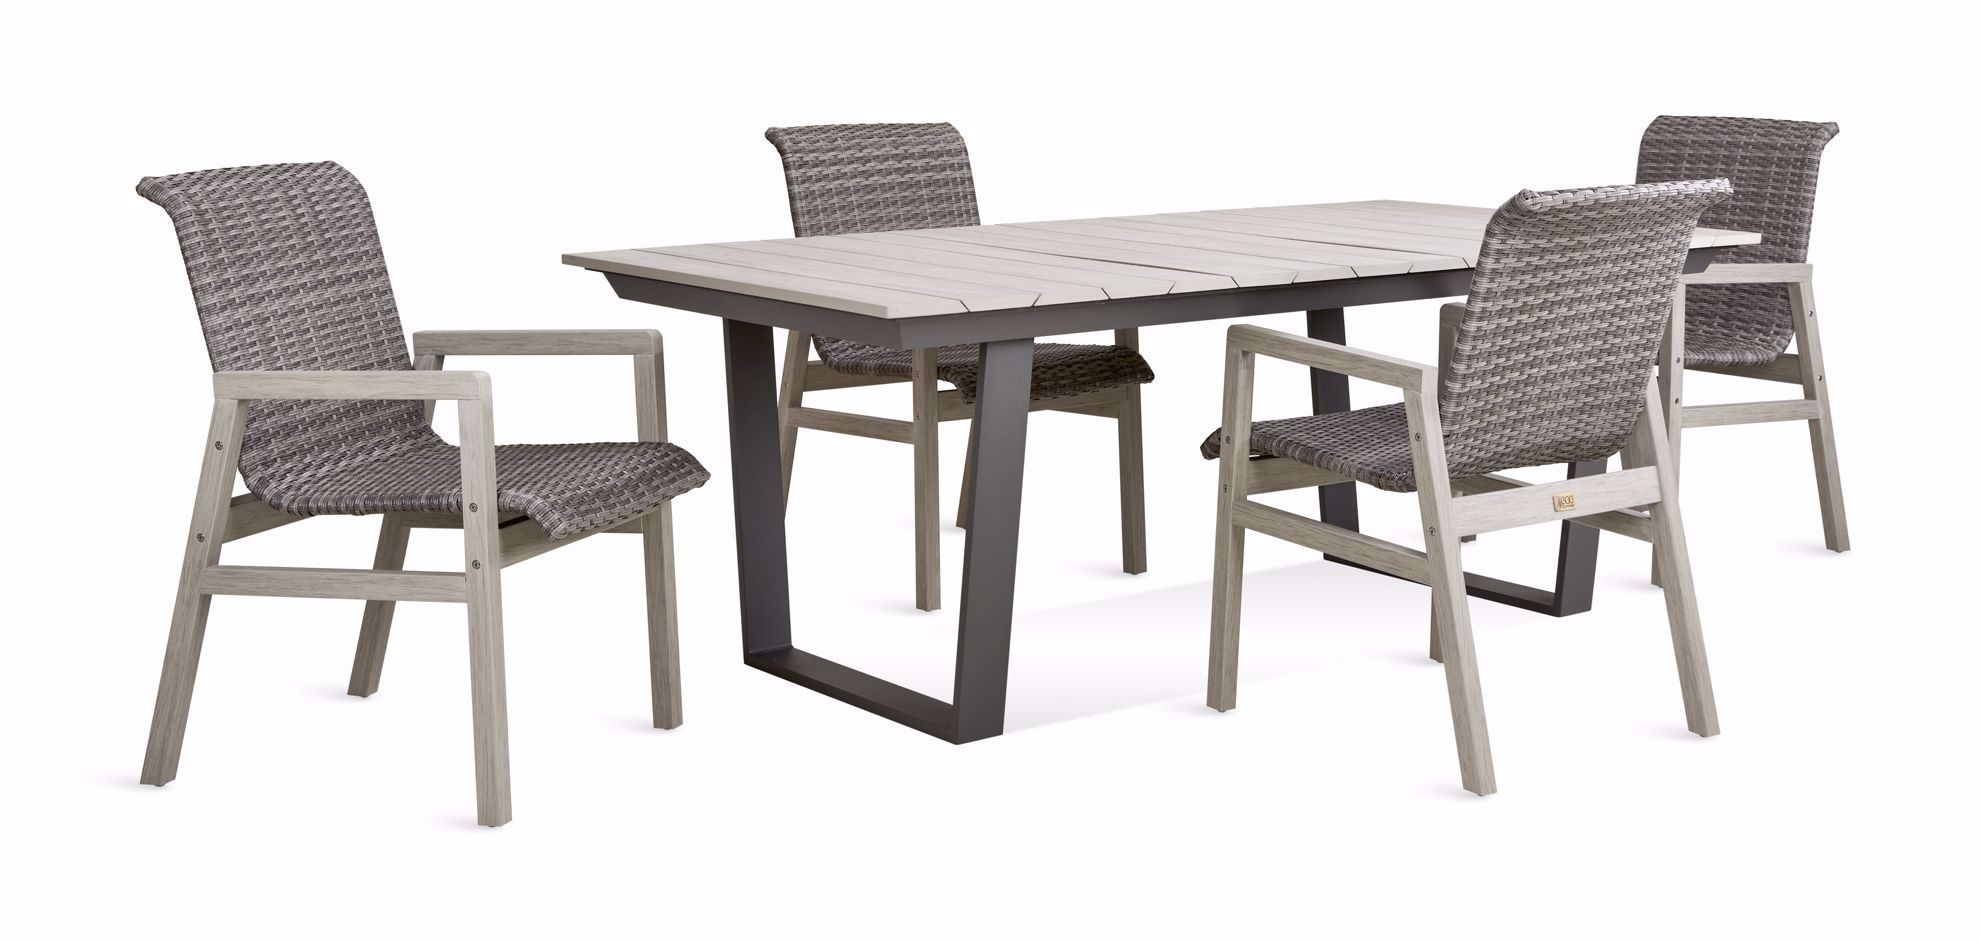 Picture of Bryce Dining Table & 4 Arm Chairs Set